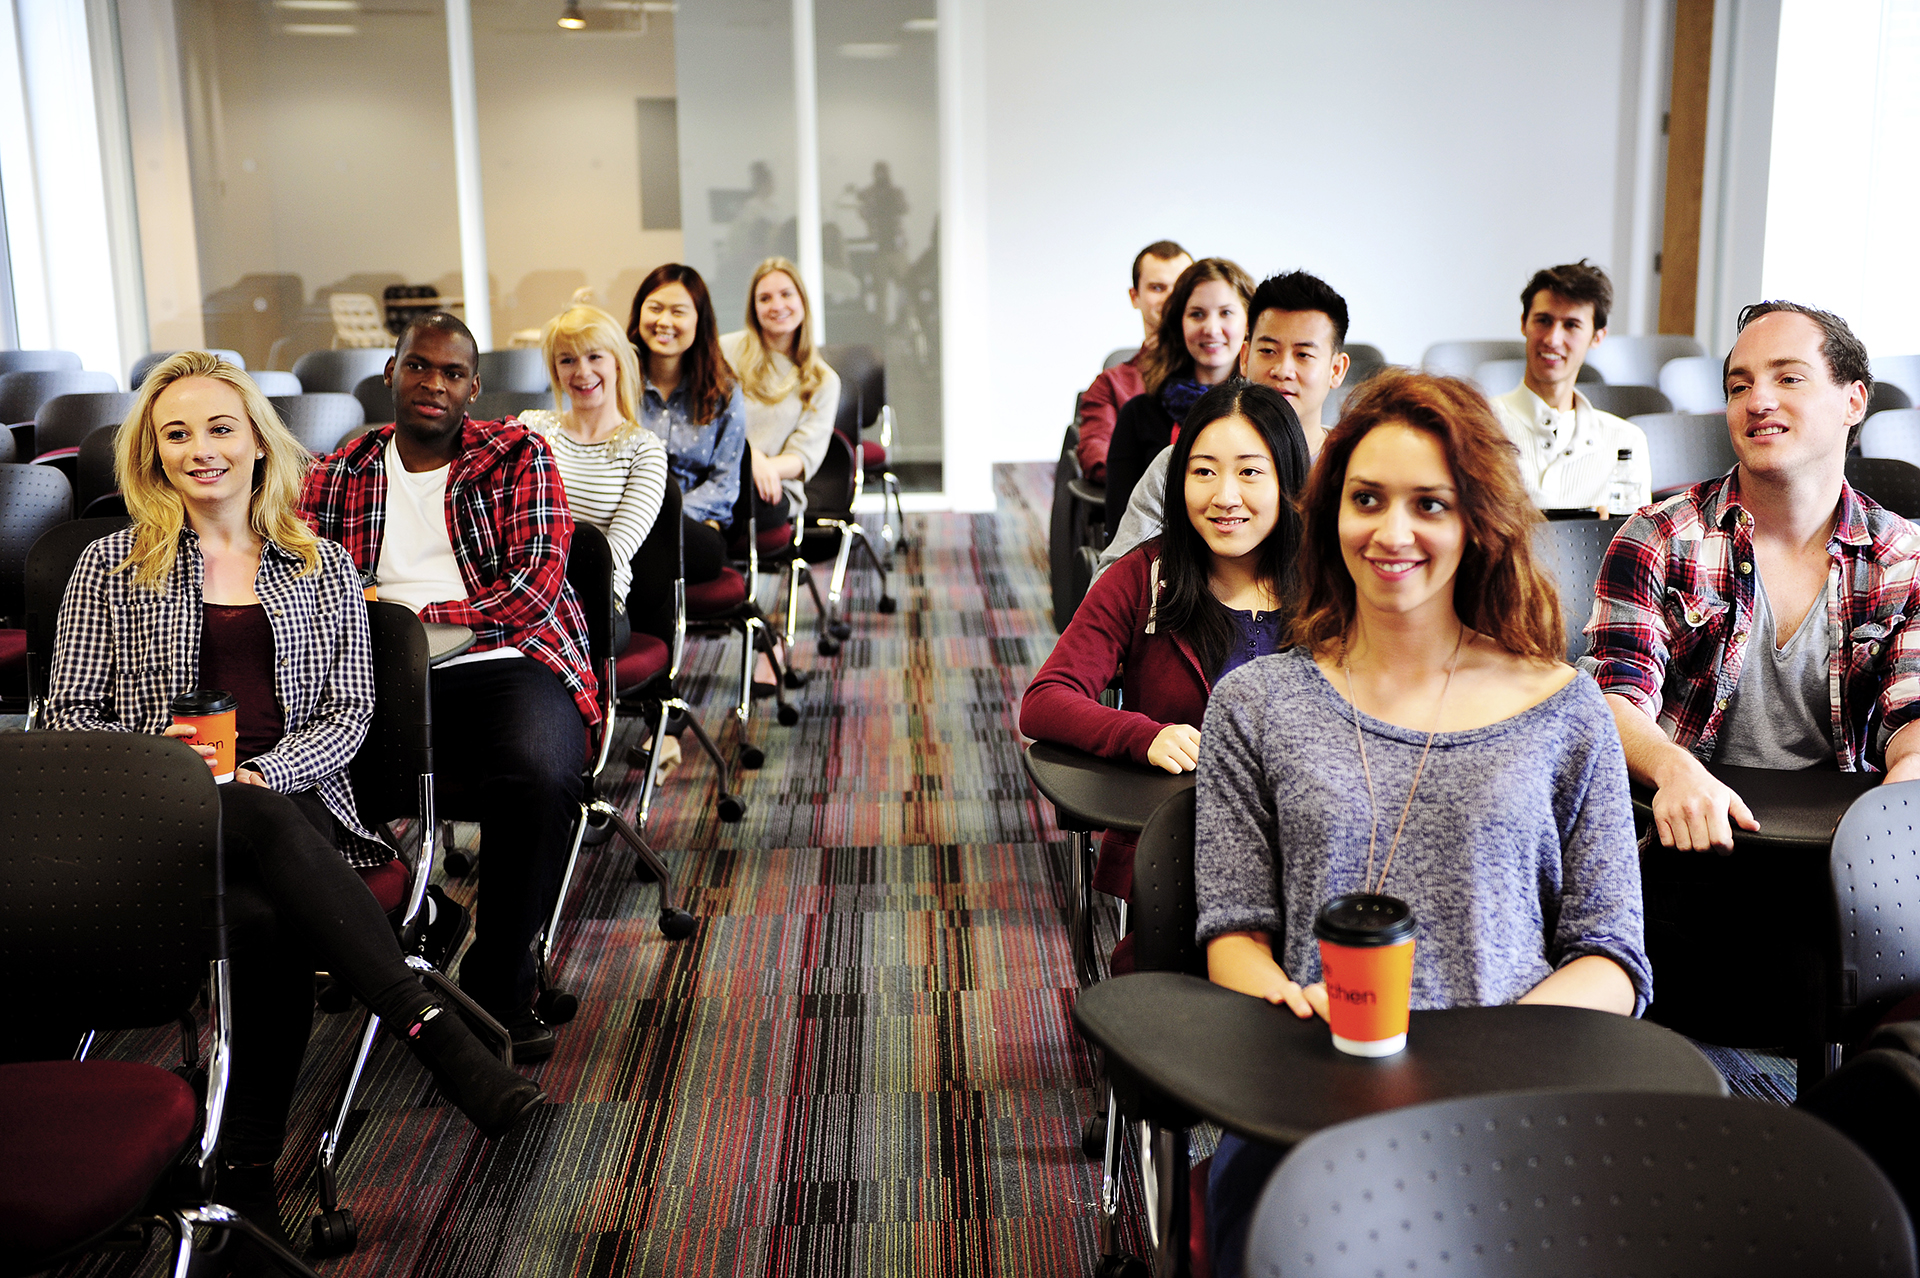 Students in a conference room for a lecture on law